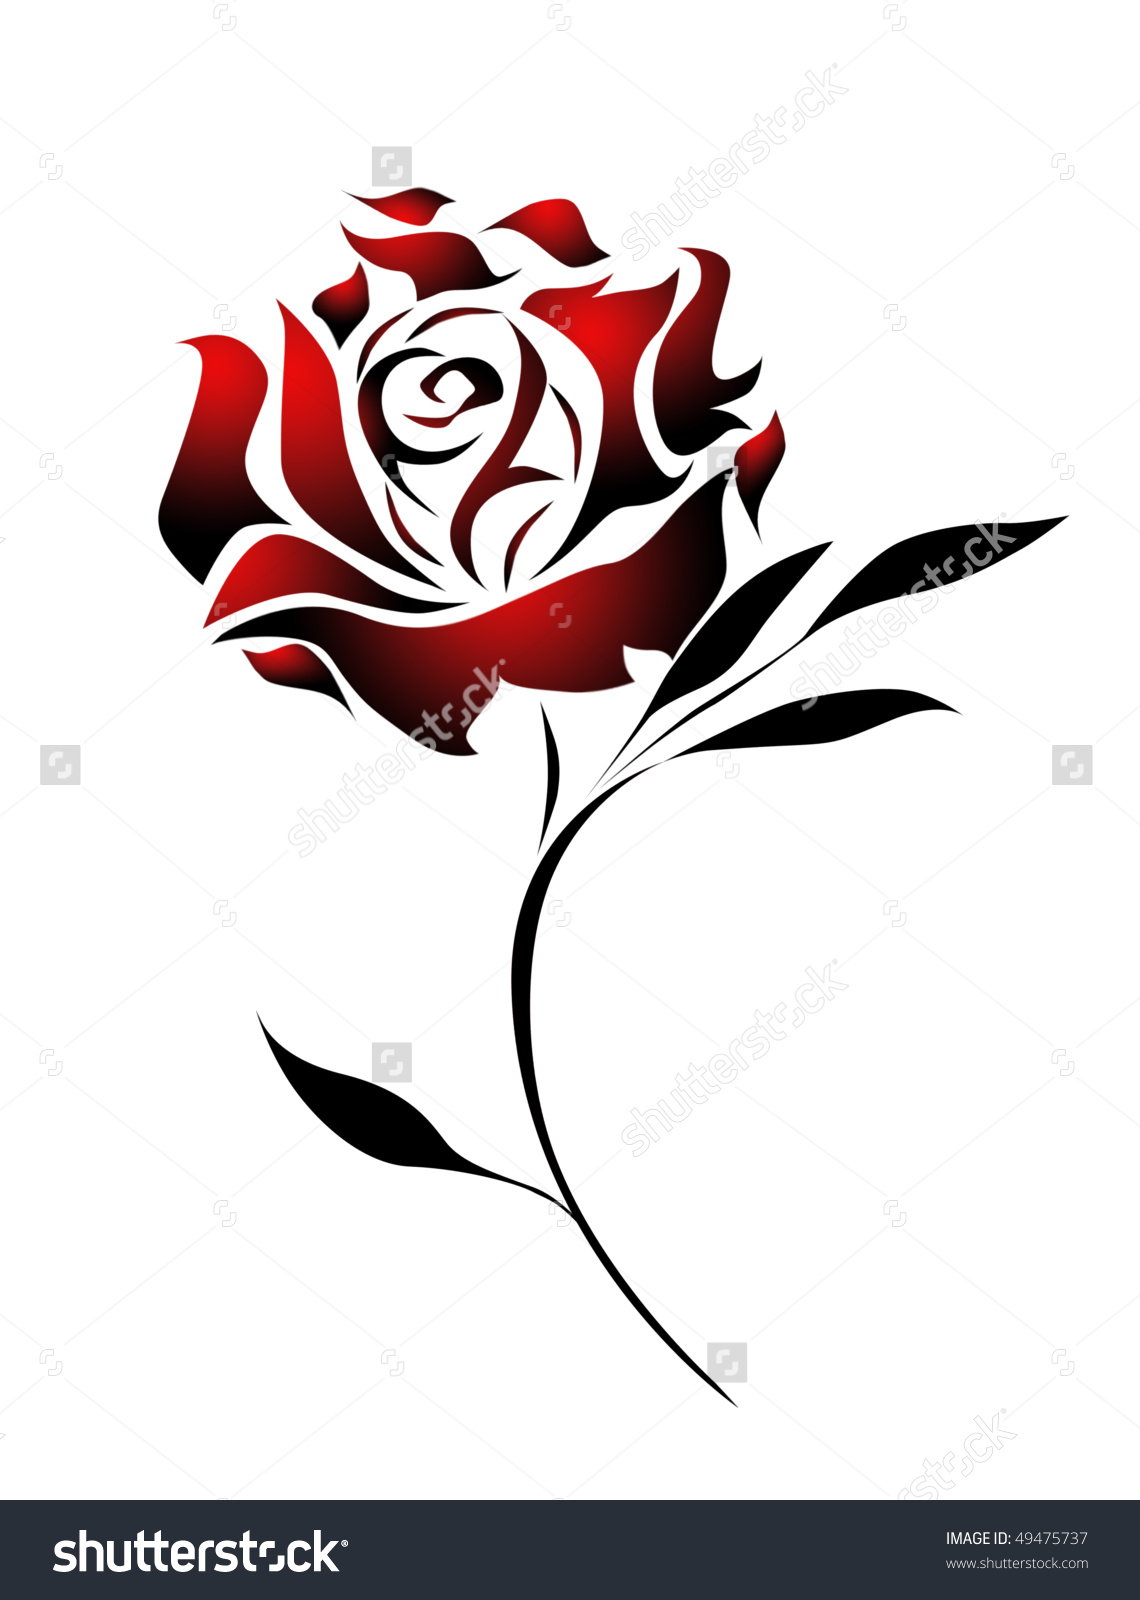 Drawn red rose branch Tattoo rose Pinterest Google Search